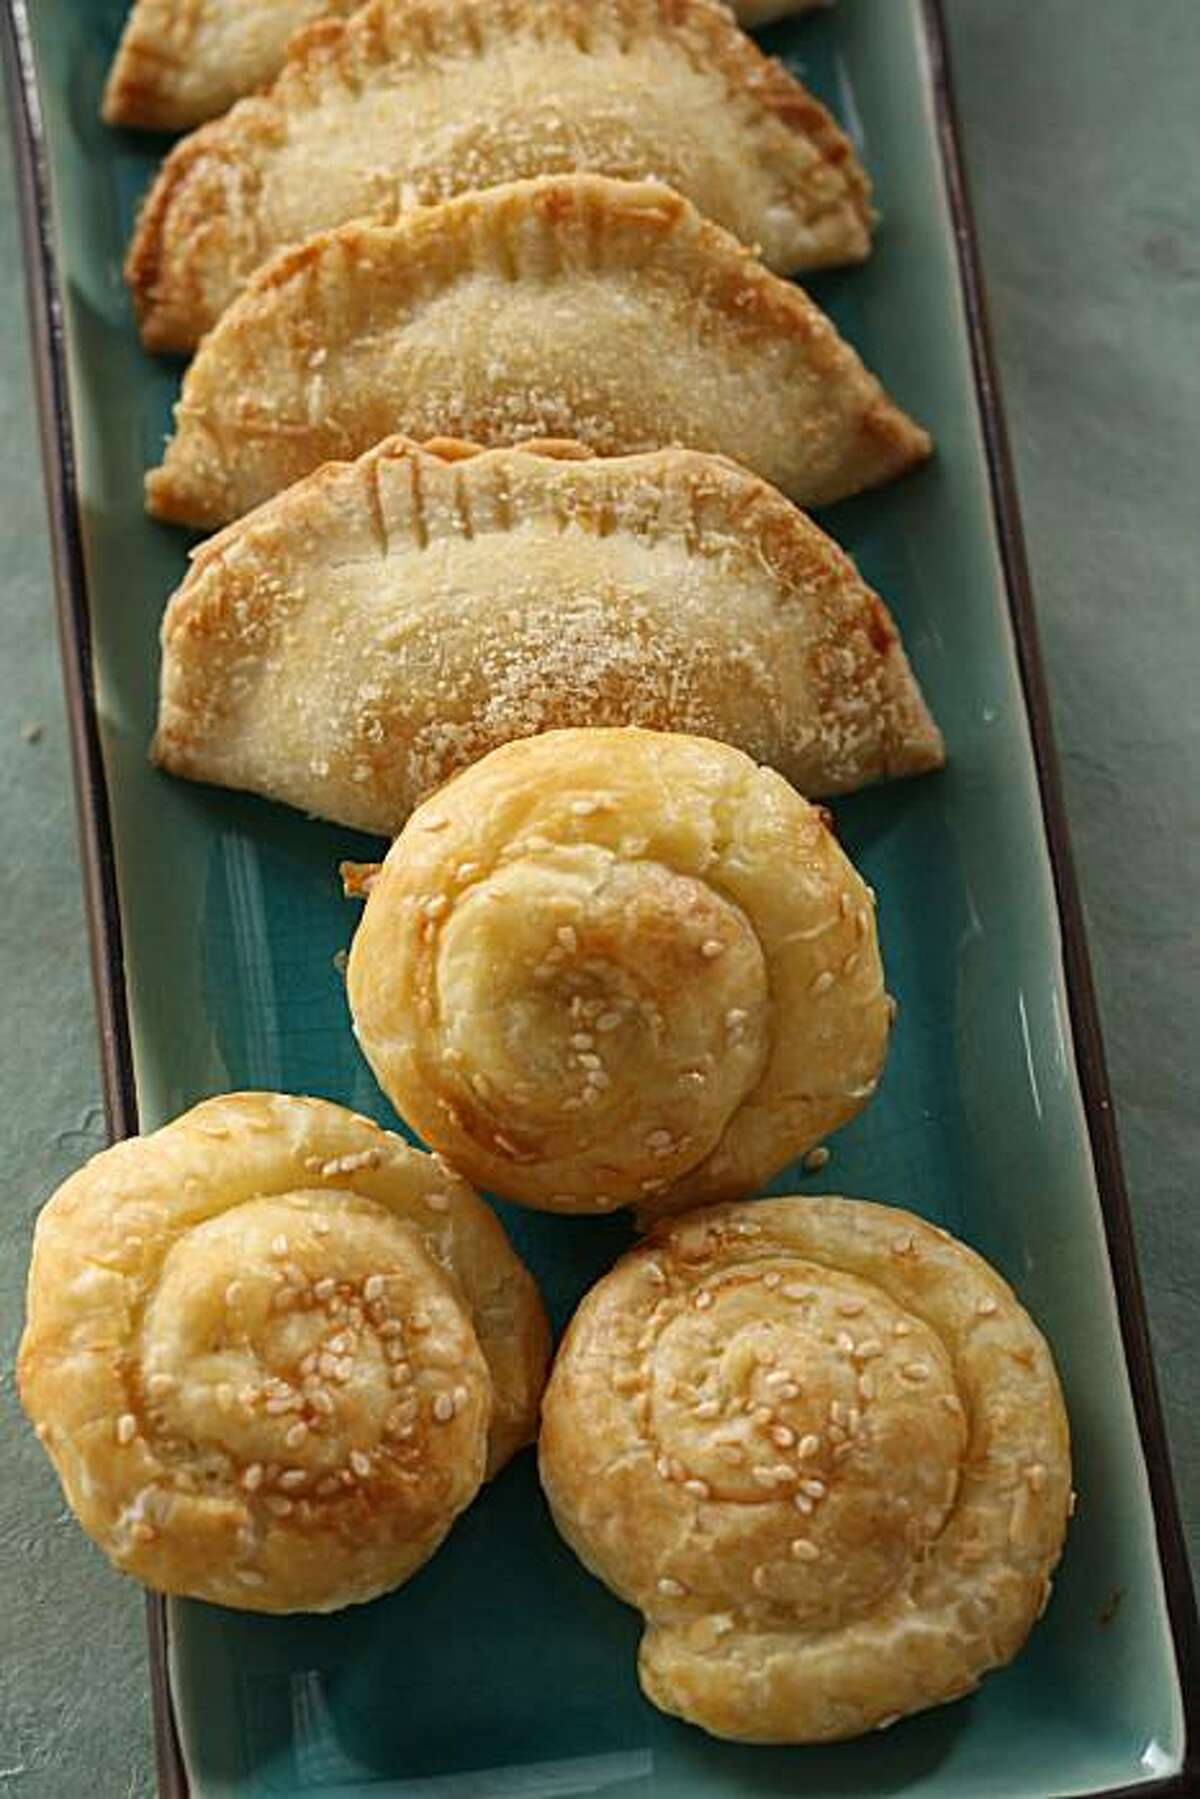 Borekas and bollos (round), traditional Sephardic pastries for Rosh Hashanah (Jewish New Year) in San Francisco, Calif., on September 18, 2008. Food styled by Emma Sullivan.